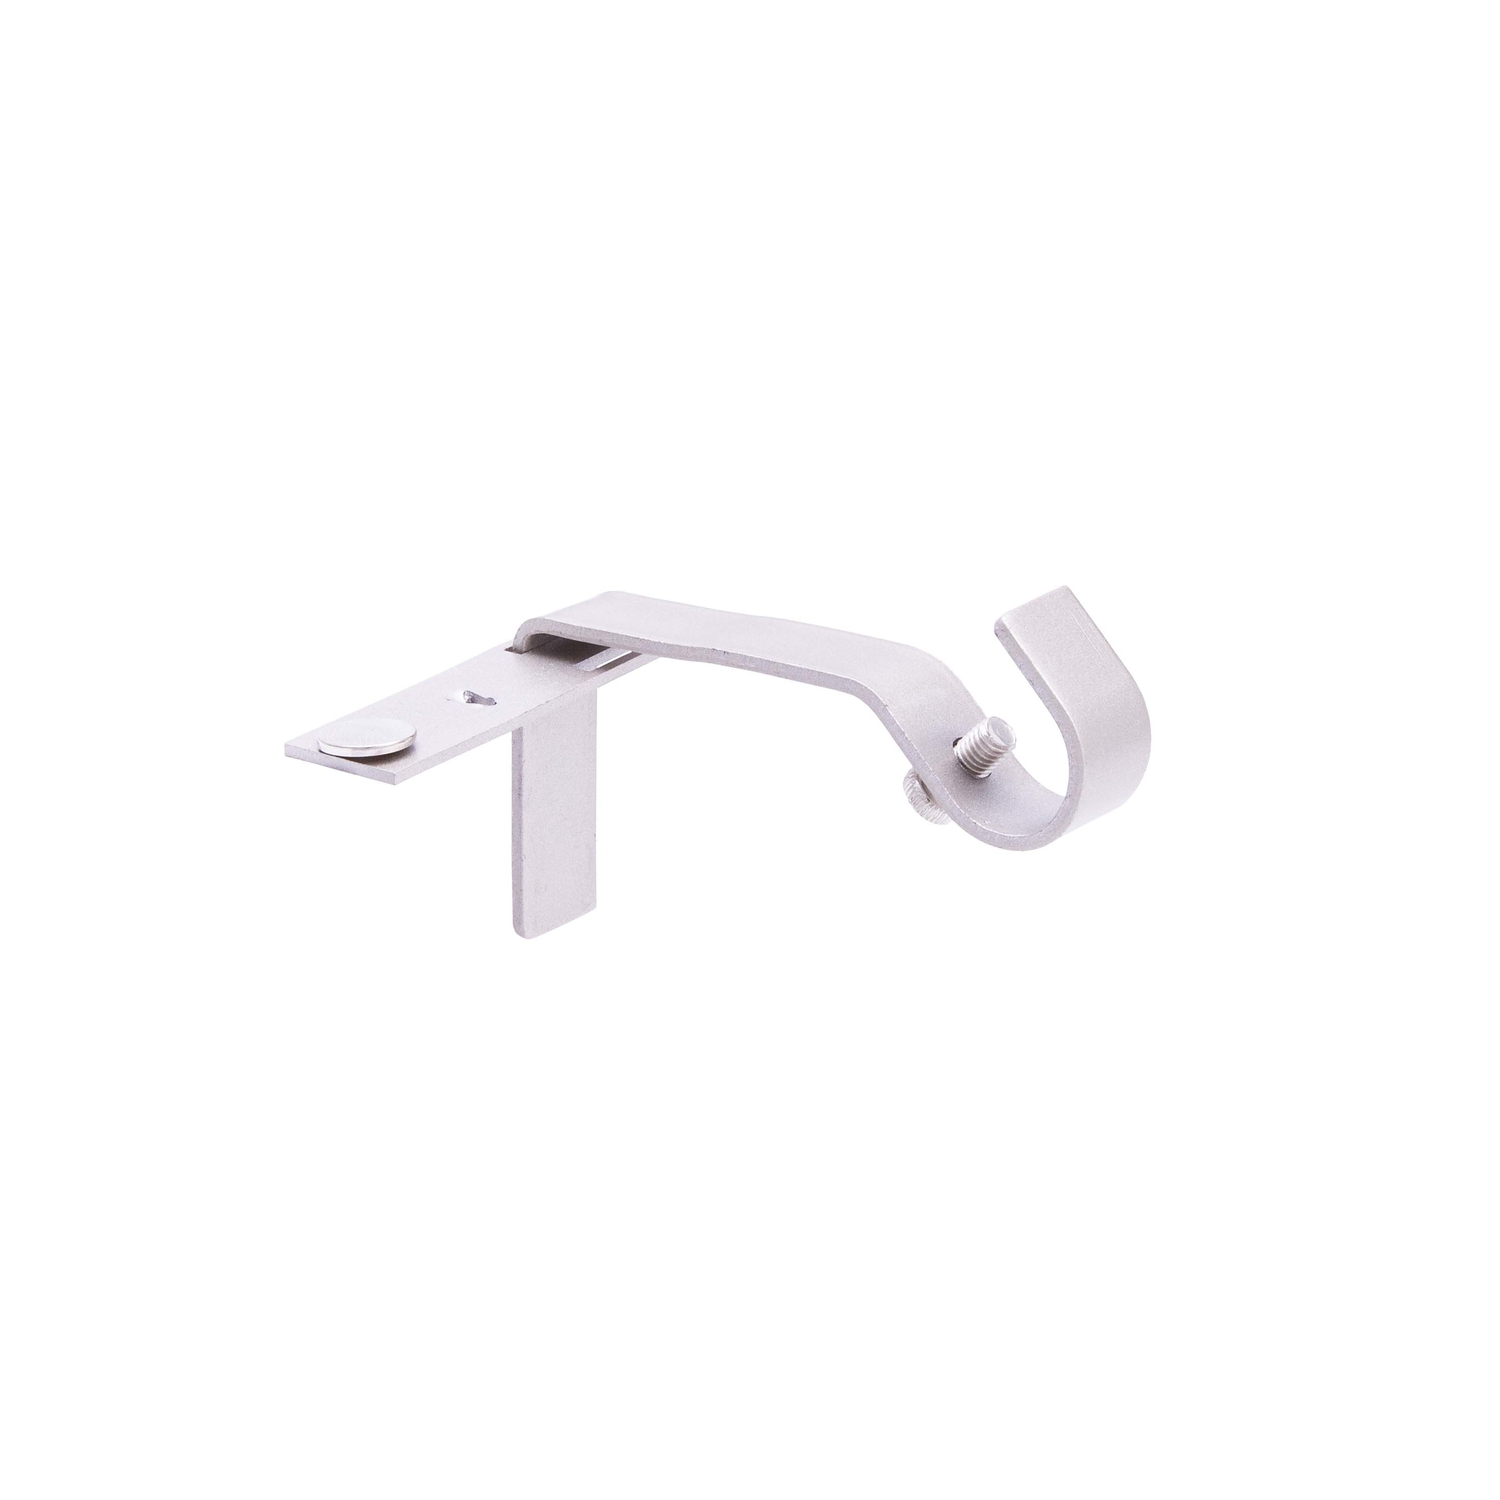 kenney fast fit brushed nickel silver curtain rod bracket 5 8 in l